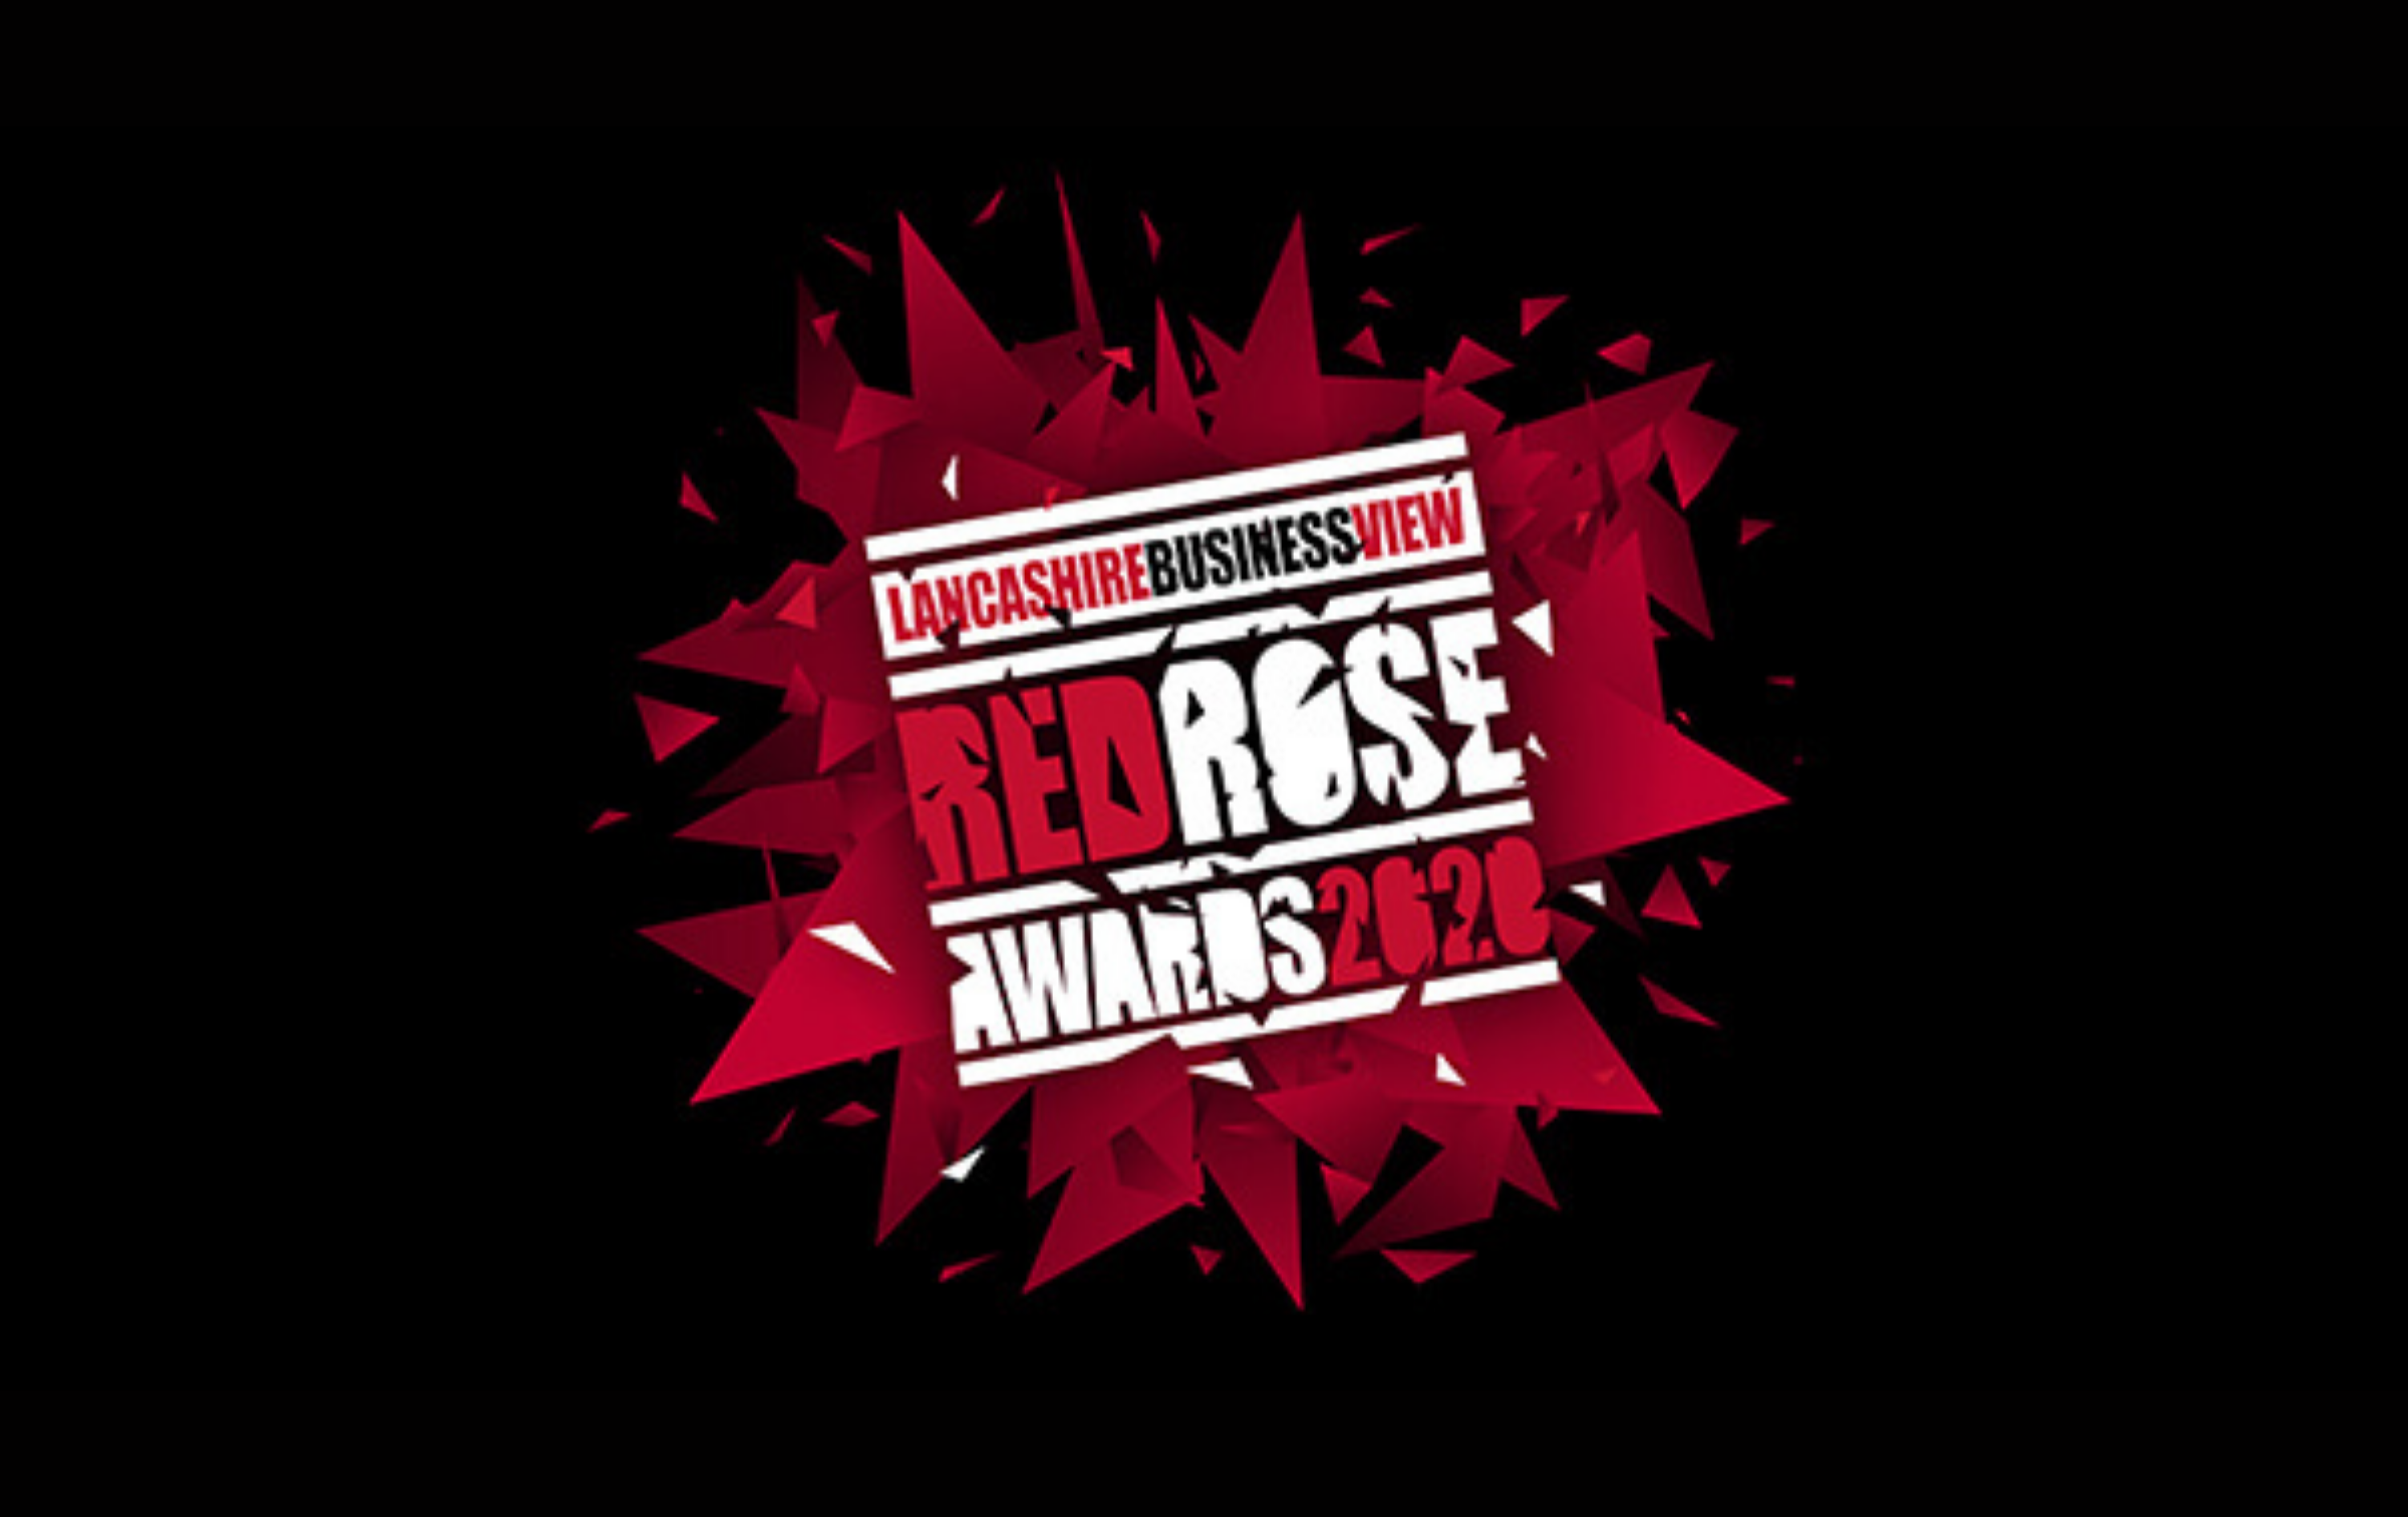 Lancashire Business View: Red Rose Awards 2020